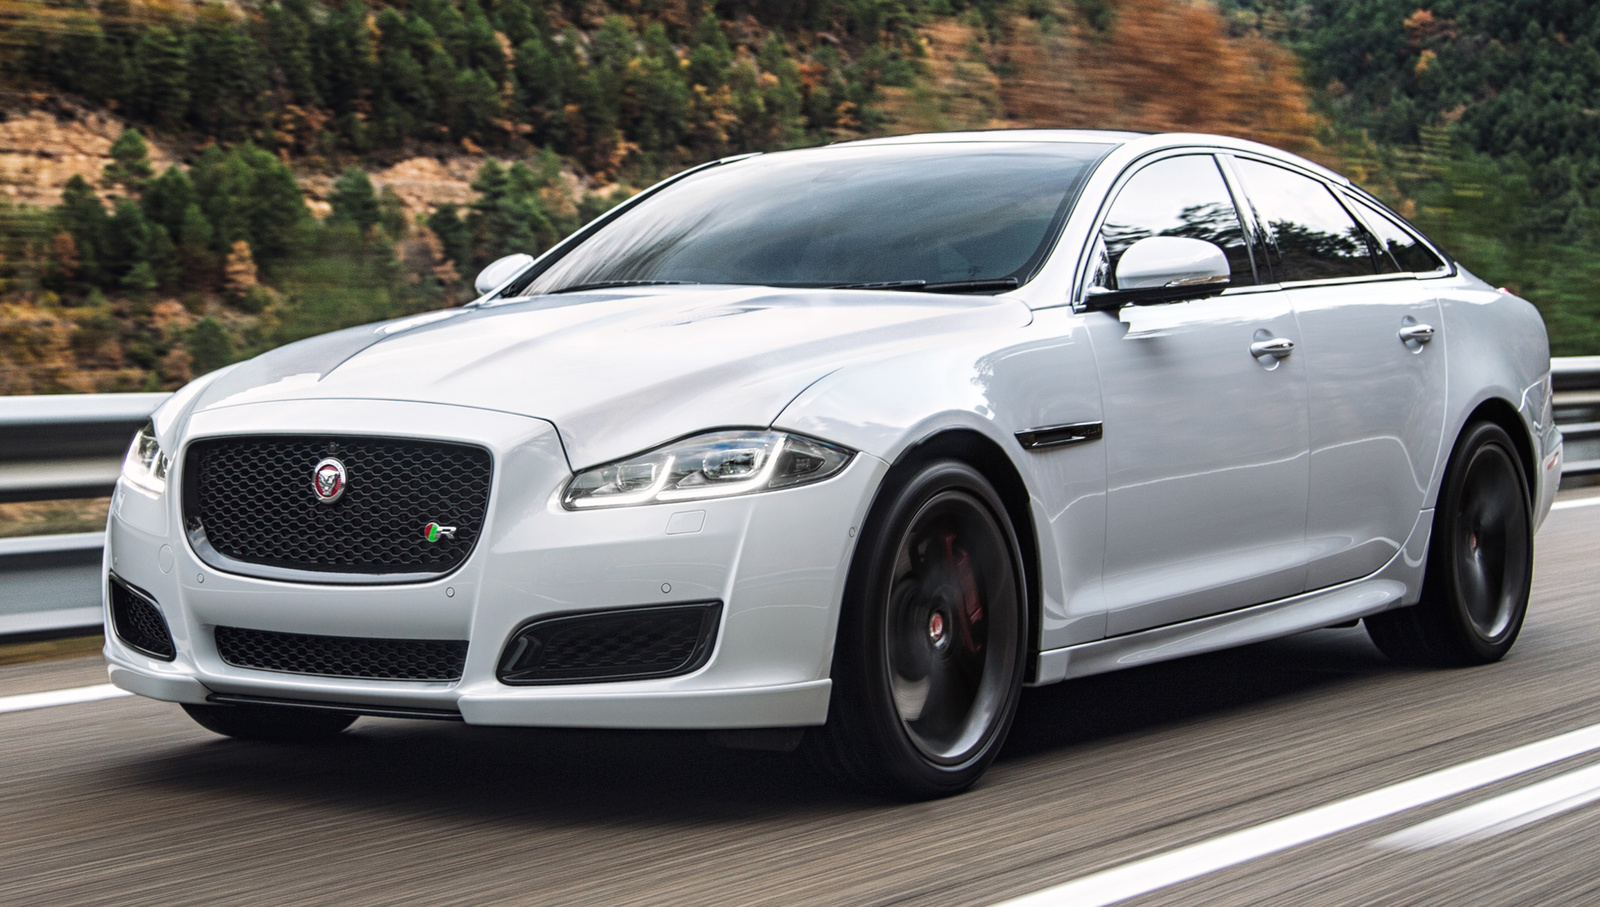 exterior sport business a range price model gee car personality sporting saloon r desktop with jaguar xf display